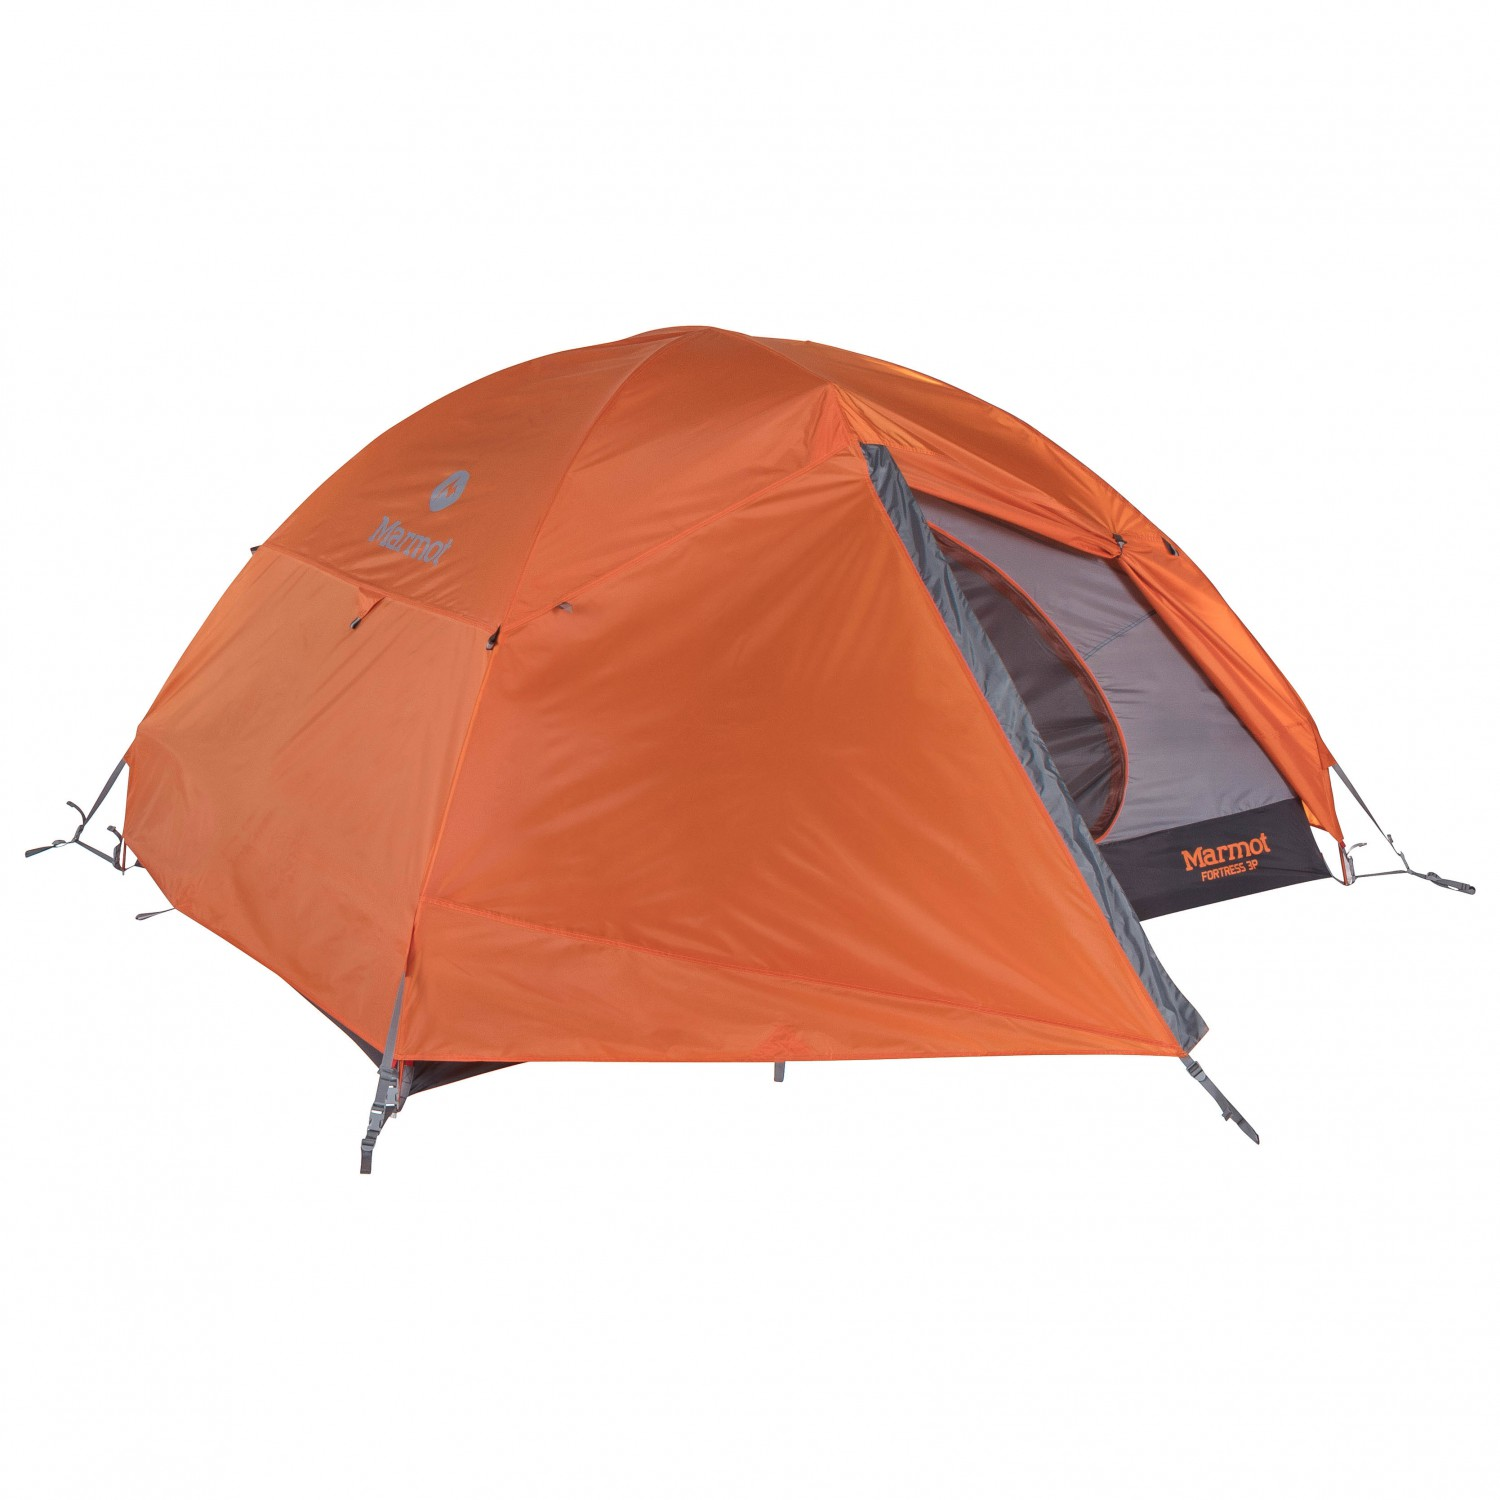 Marmot - Fortress 3P - 3 man tent ...  sc 1 st  Alpinetrek & Marmot Fortress 3P - 3 Man Tent | Free UK Delivery | Alpinetrek.co.uk